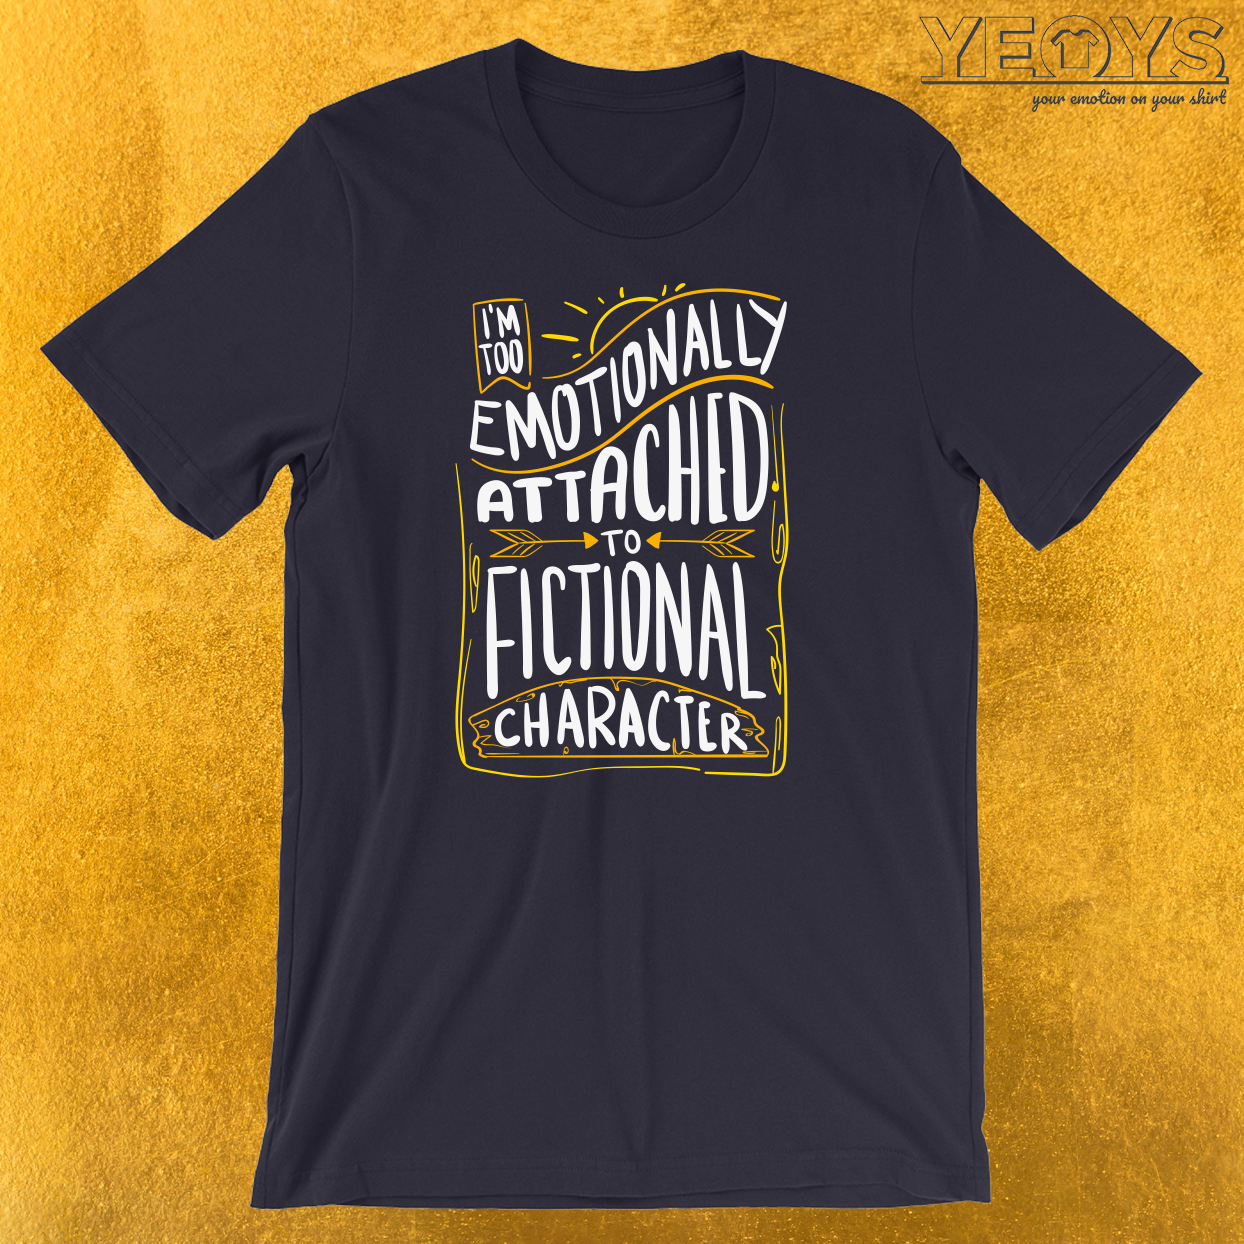 Emotionally Attached To Fictional Characters T-Shirt